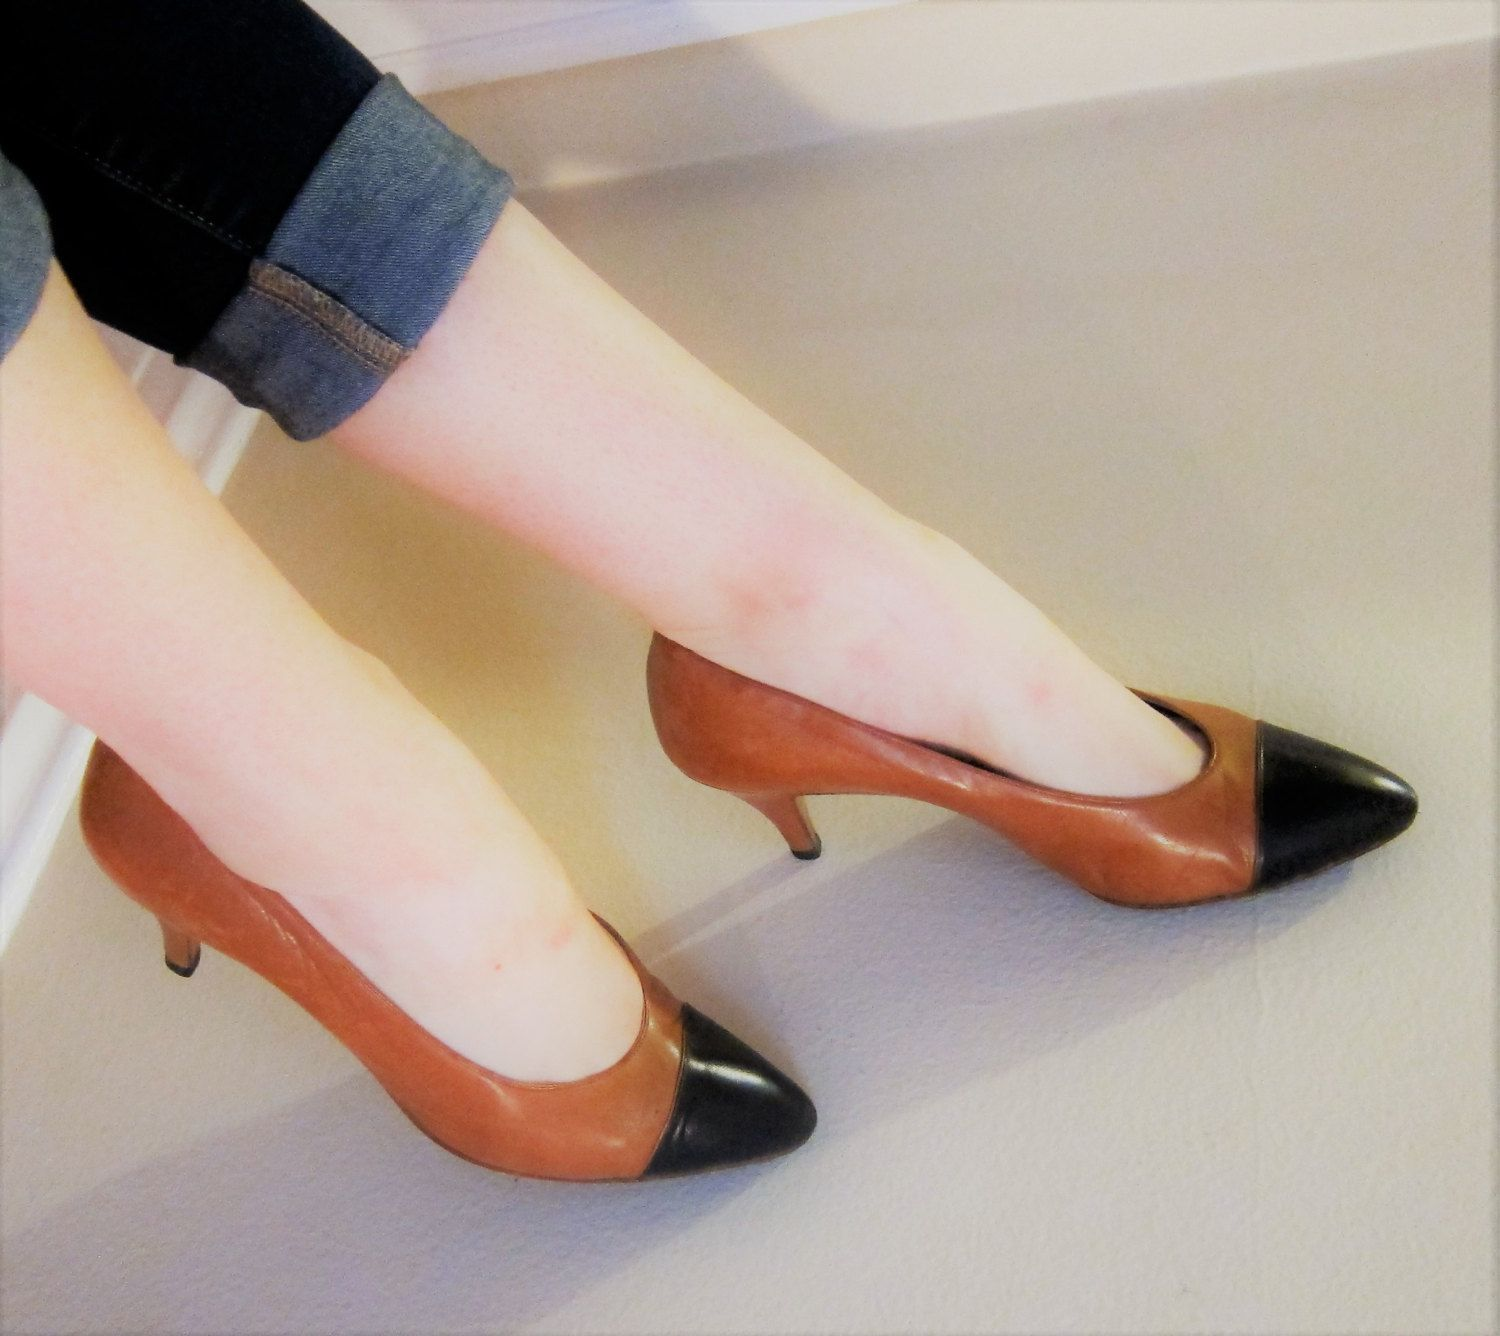 4071efb3a4933 Vintage 1980s CHANEL pumps in brown and black / 80s designer two ...